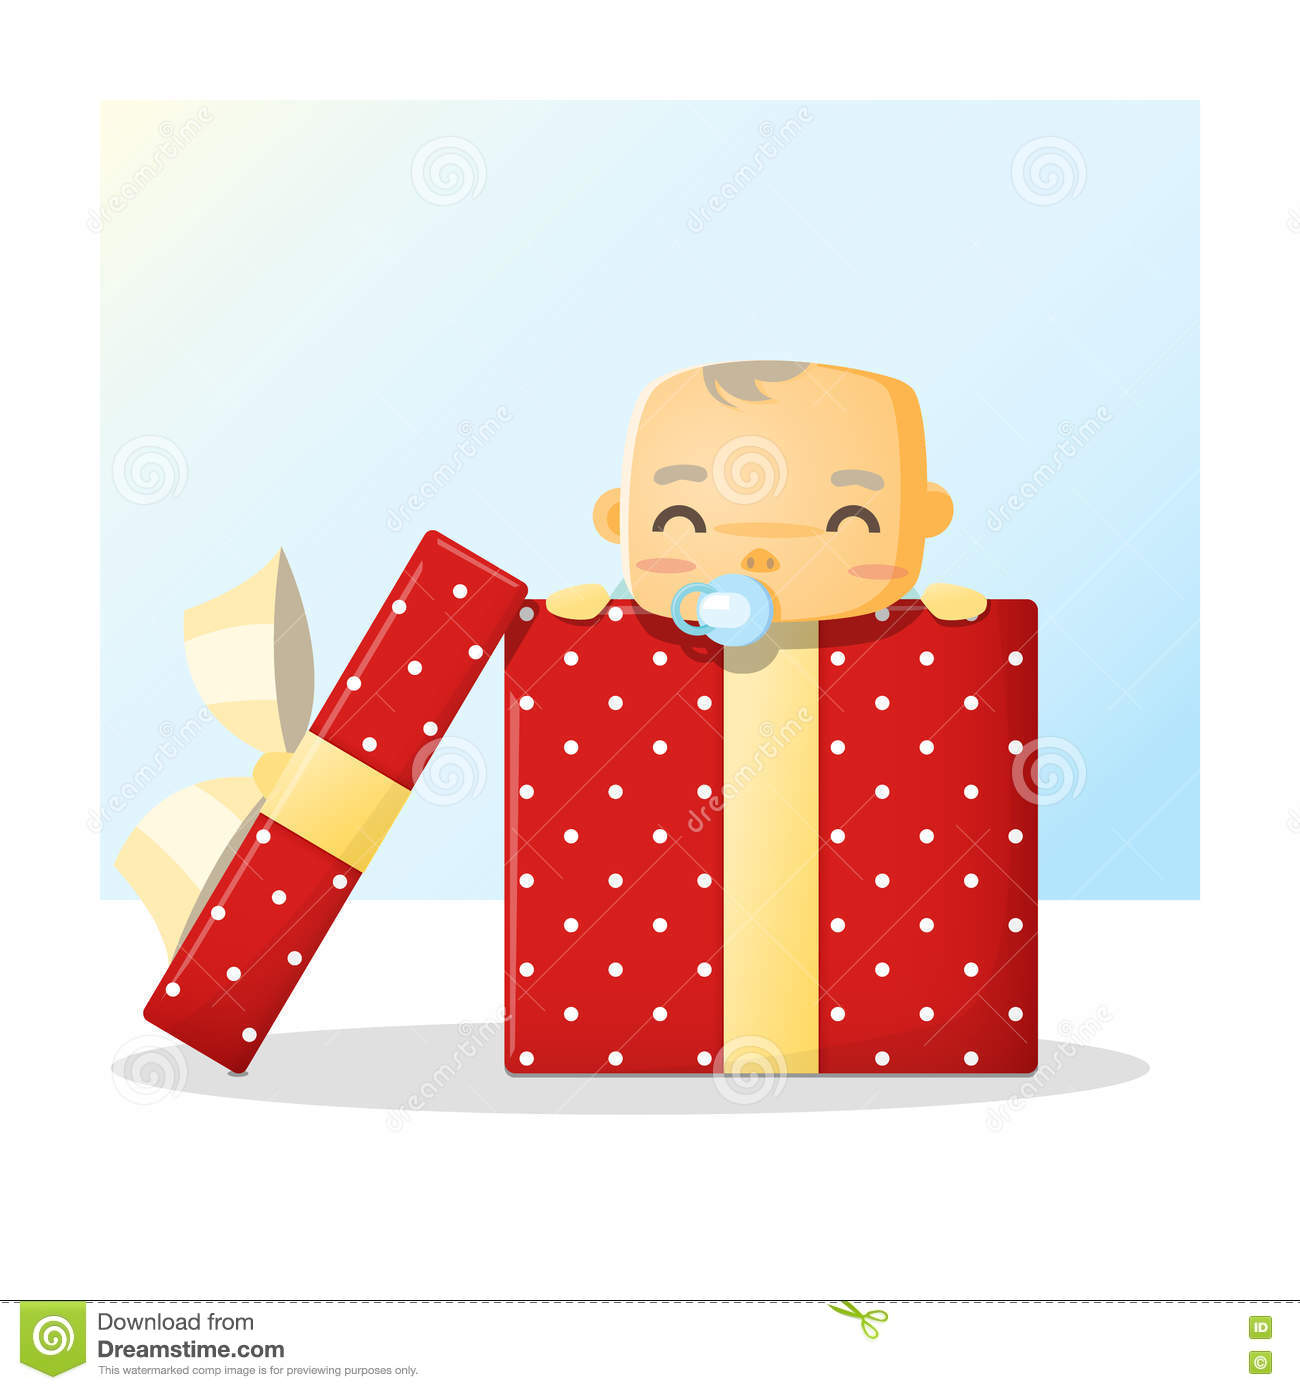 Baby Gift Vector : Cute baby inside gift box background stock vector image